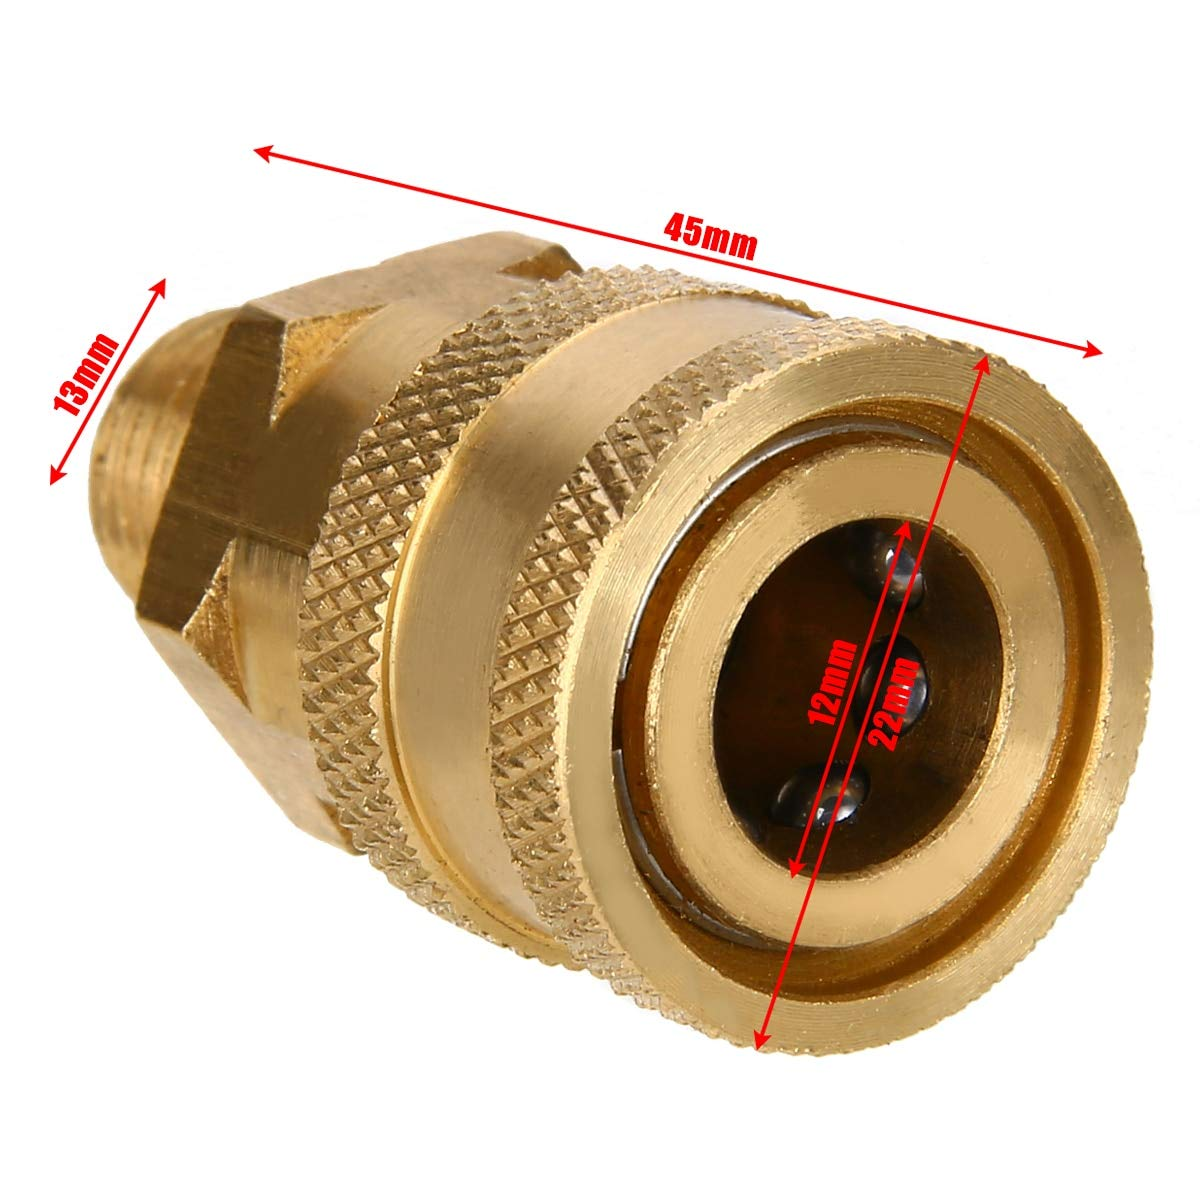 Ochoos 1pc 1/4'' Male (MNPT) High Pressure Washer Brass Quick Connect Coupler Converter for Hot Cold Power Washers Connector Fittings